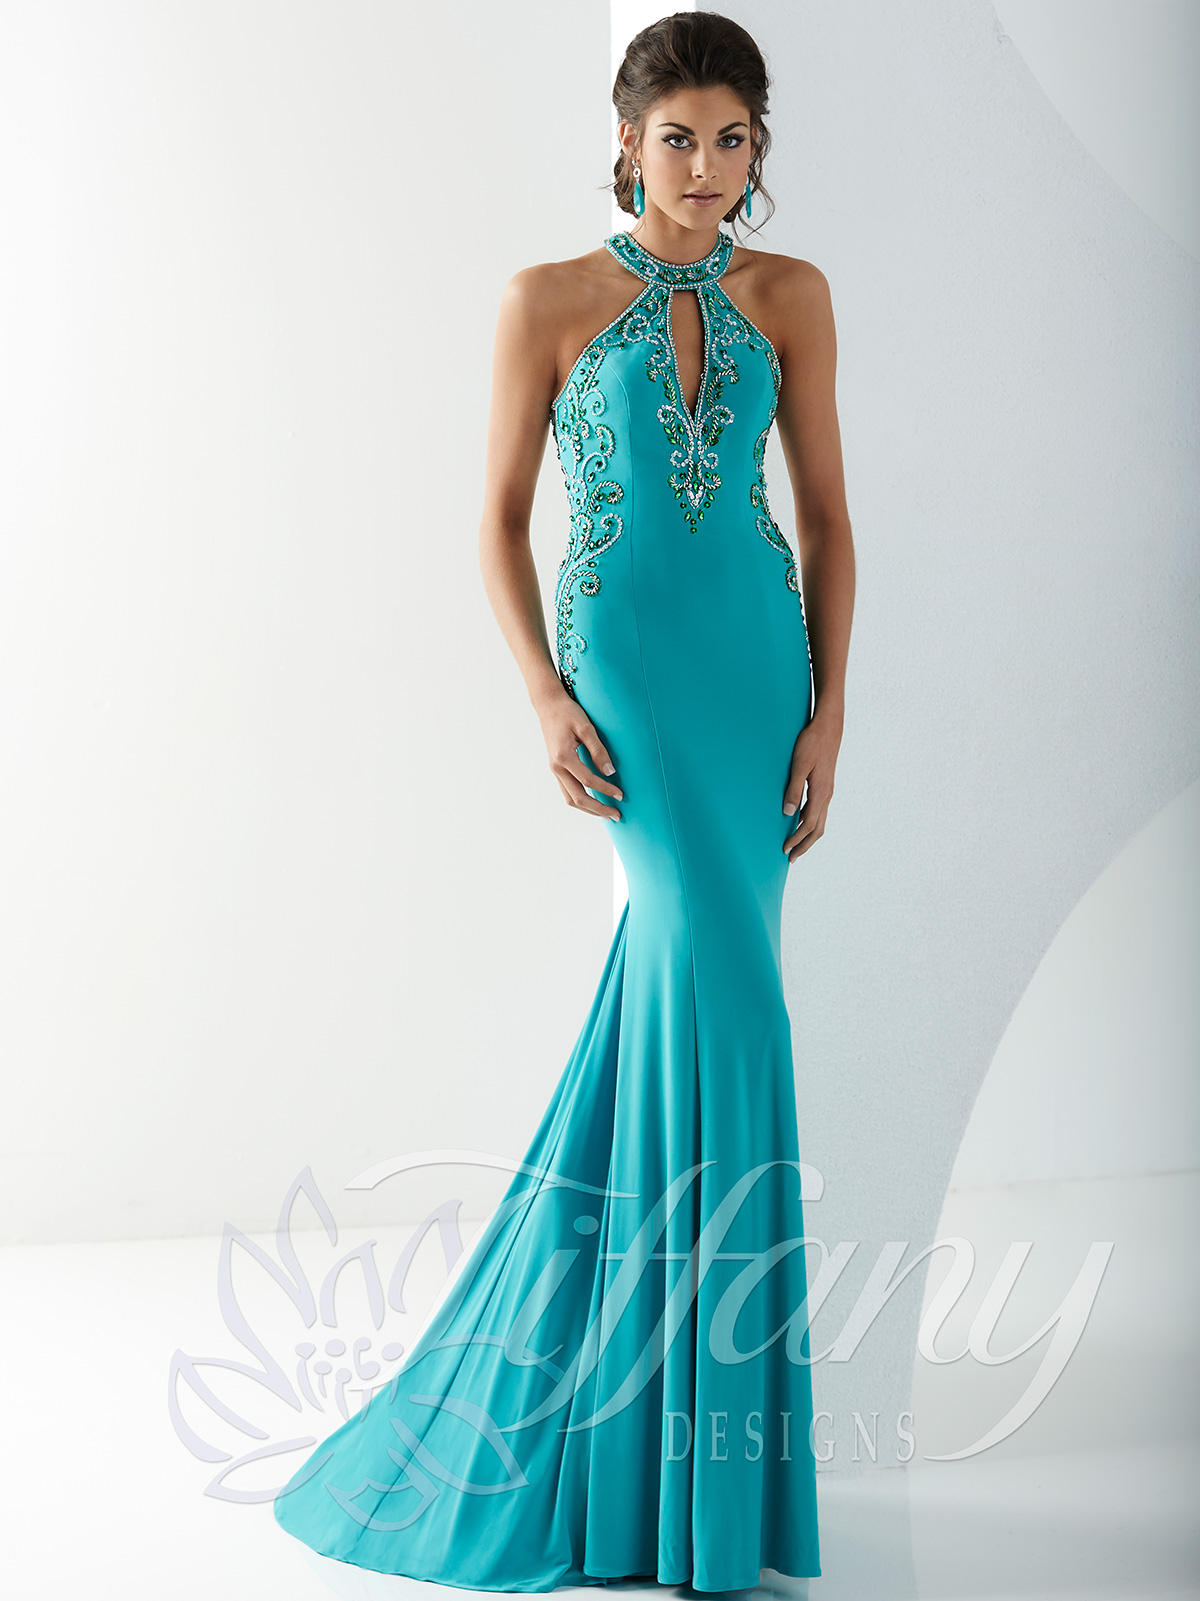 Fine Prom Dress Stores In Arlington Tx Mold - Colorful Wedding Dress ...